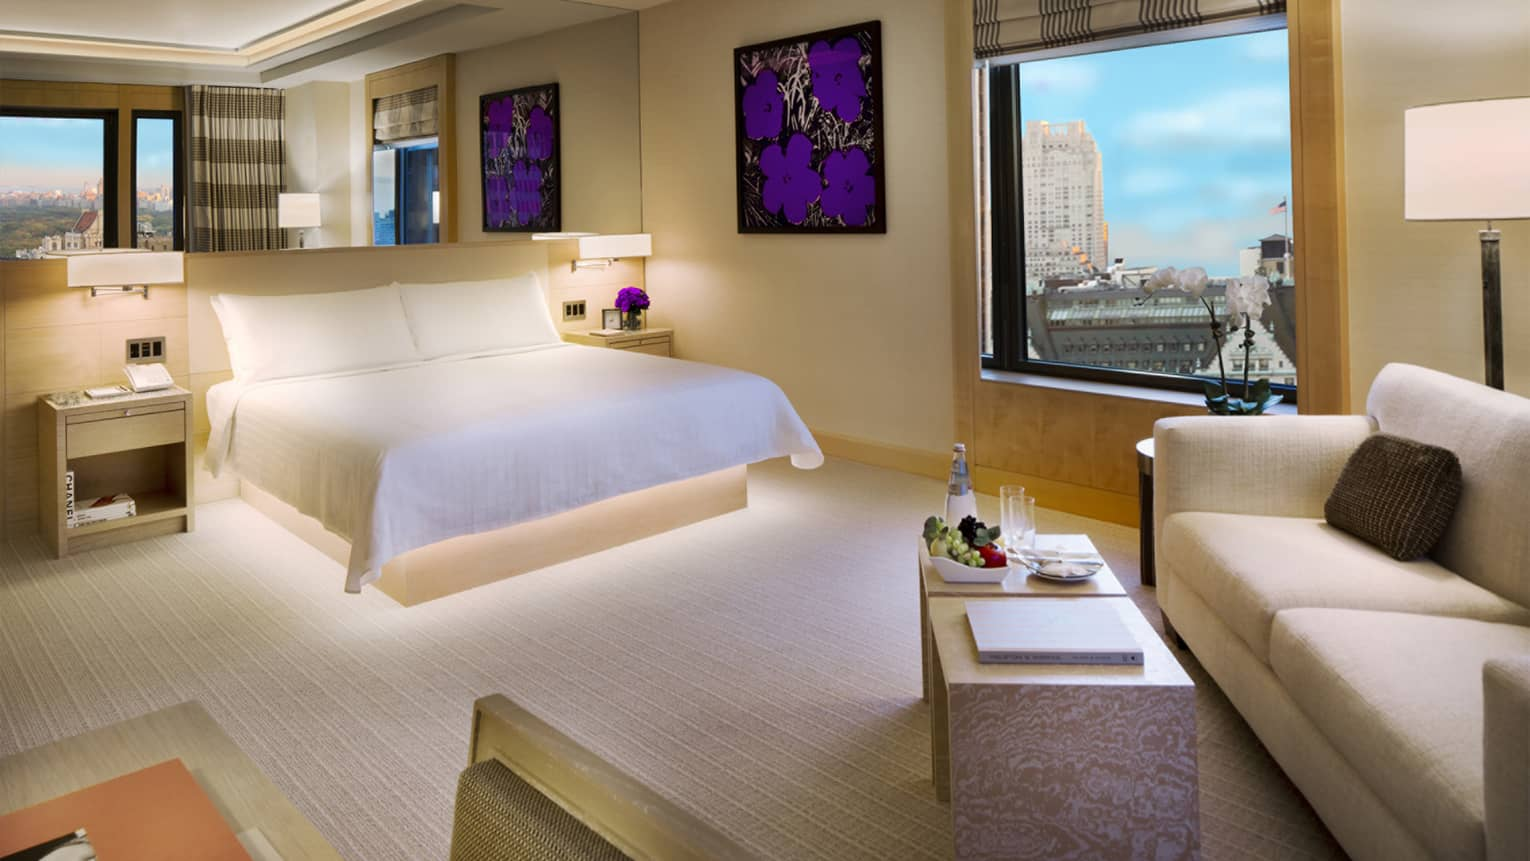 Modern Manhattan Junior Suite with framed purple flower print, white bed, sofa, window with park view